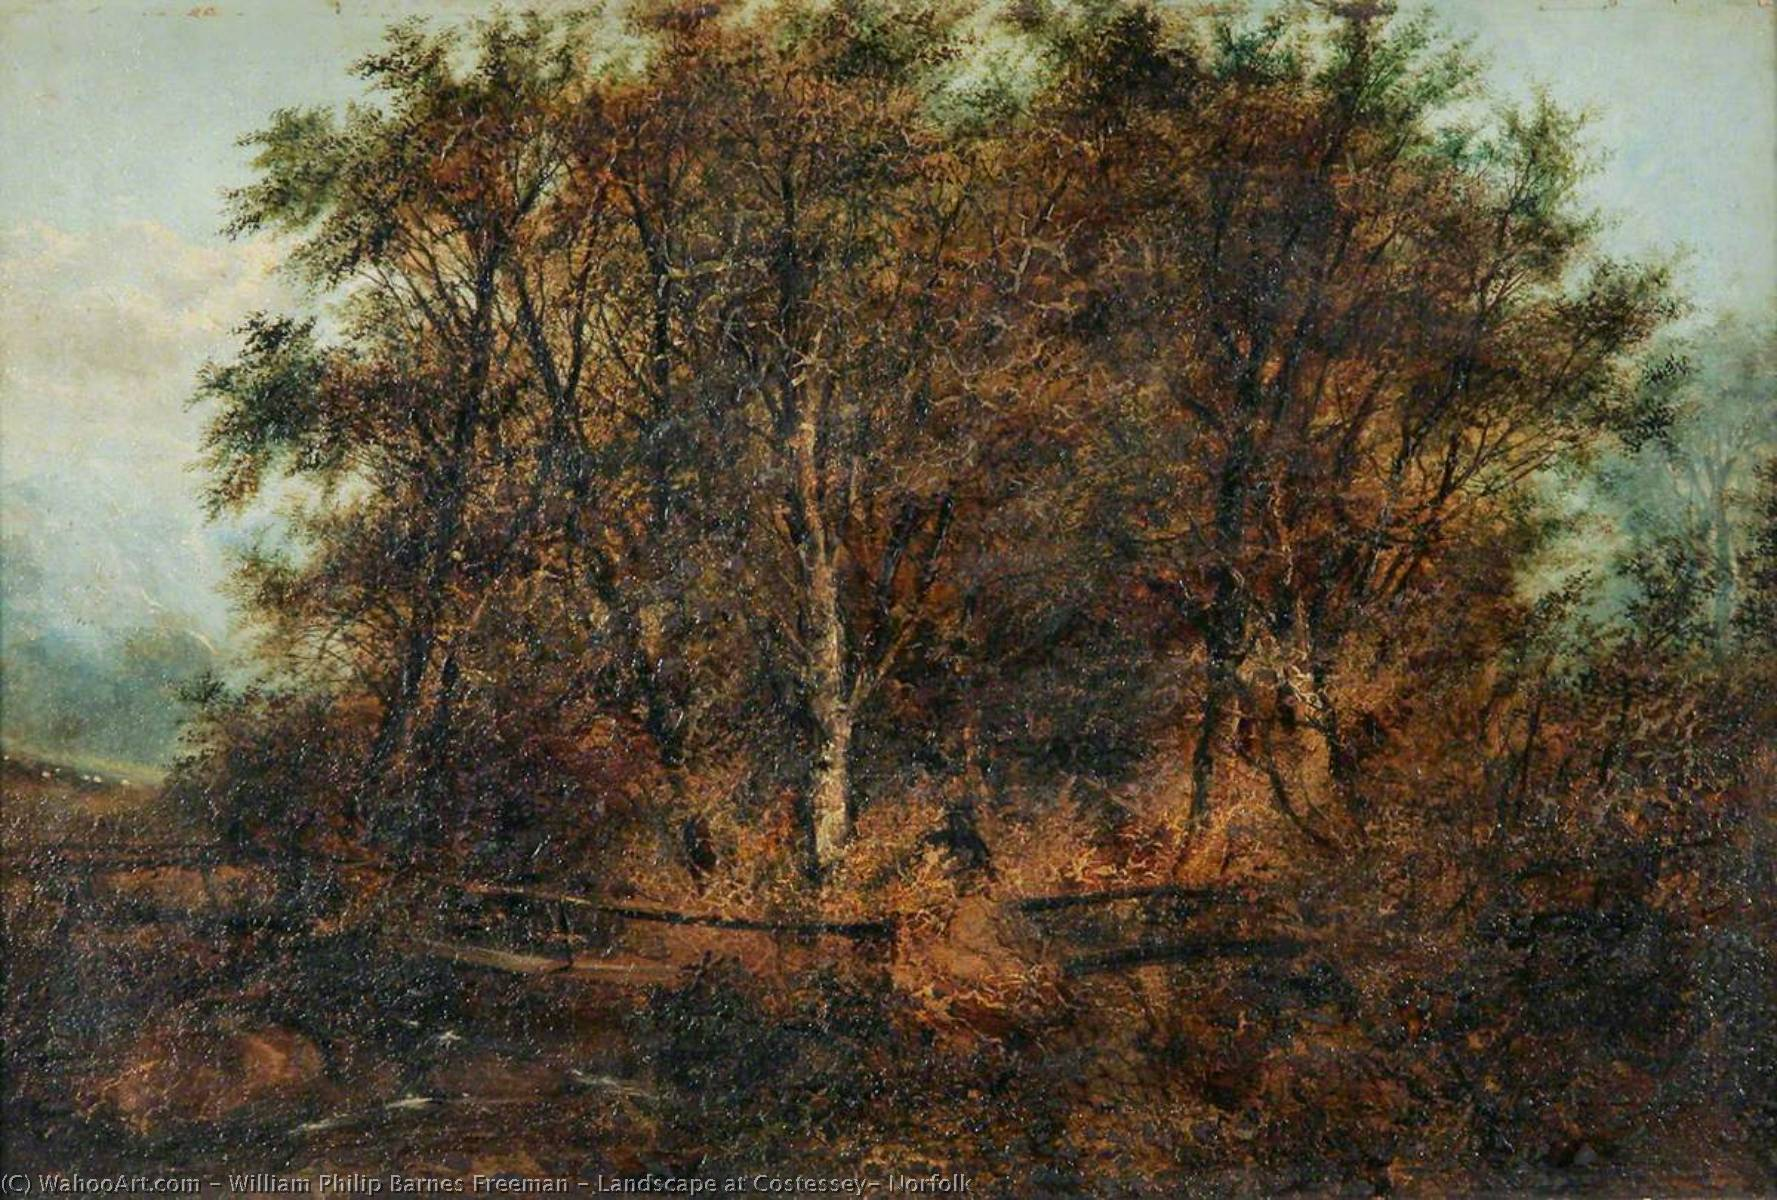 Landscape at Costessey, Norfolk by William Philip Barnes Freeman | Museum Art Reproductions William Philip Barnes Freeman | WahooArt.com